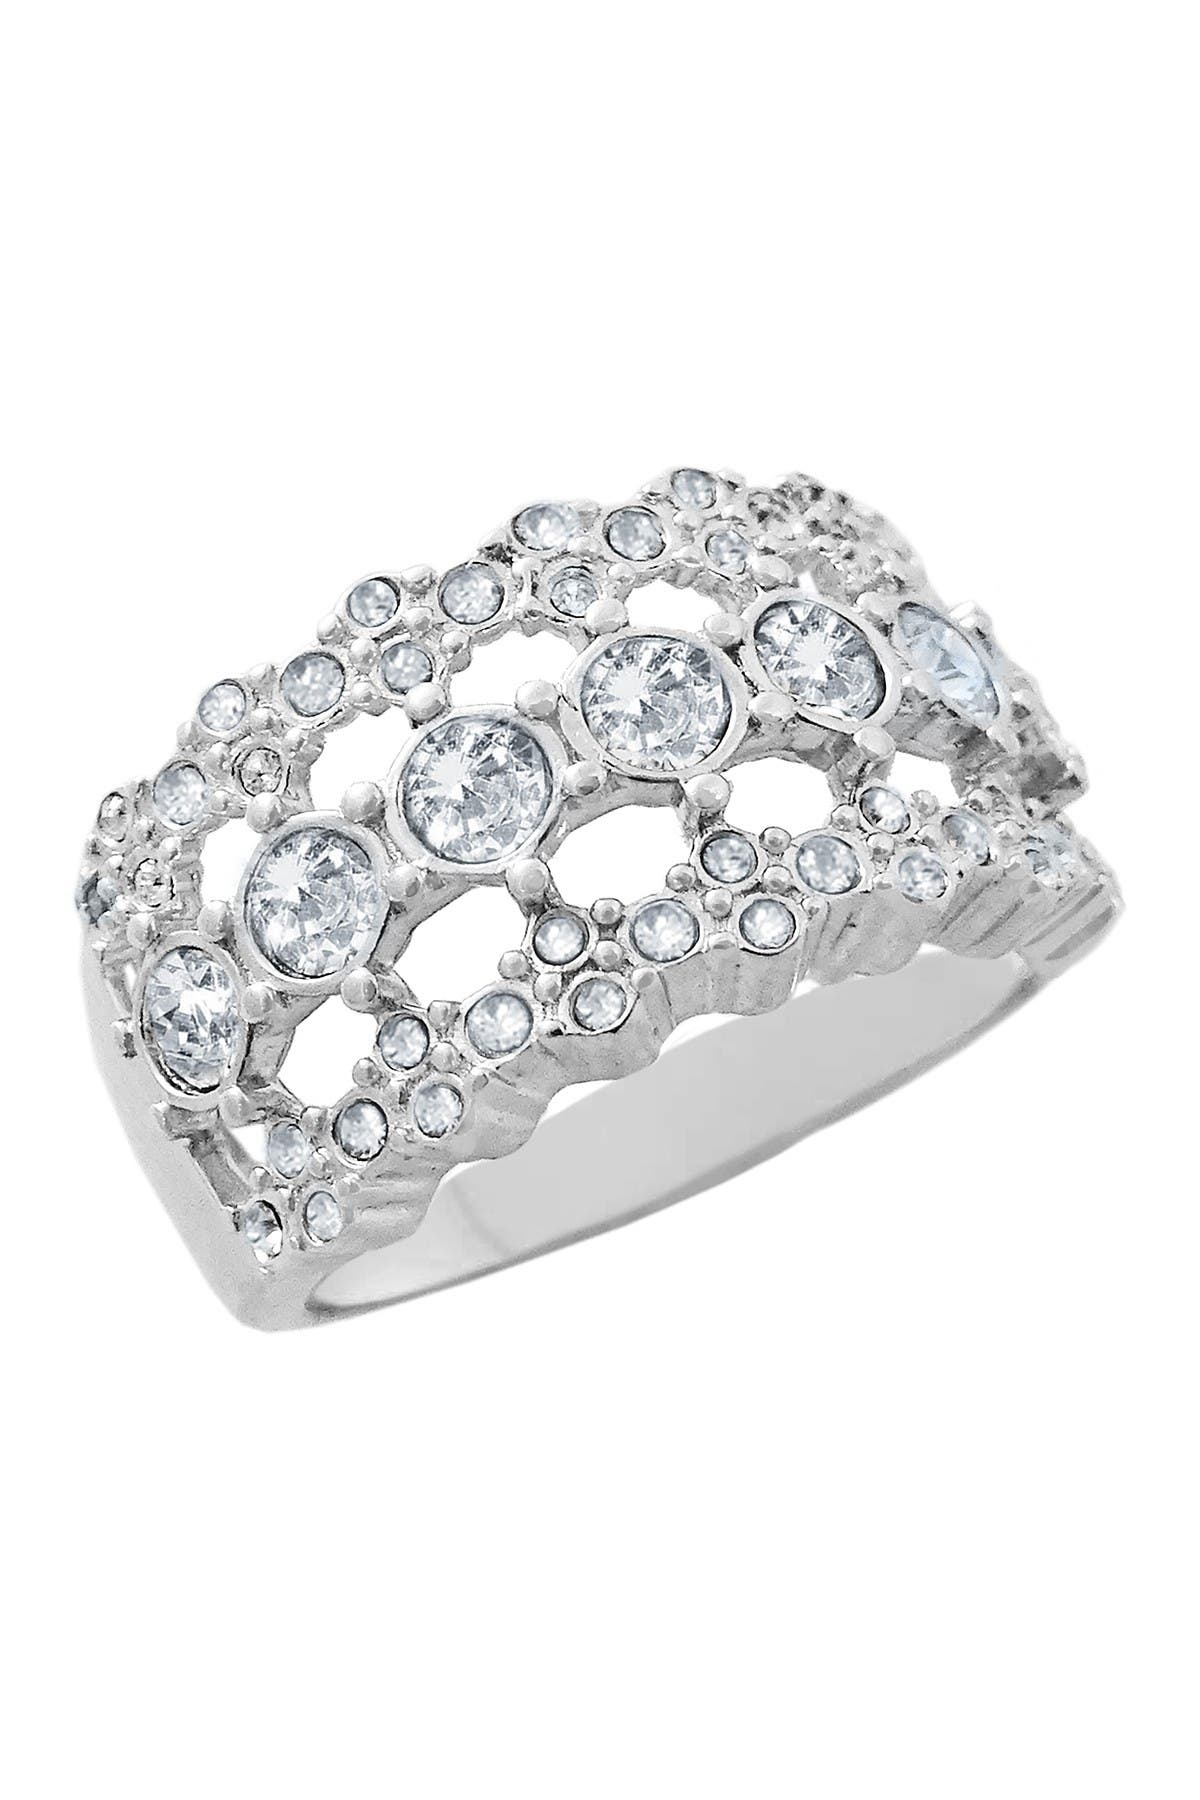 Image of Savvy Cie Sterling Silver Wide 3 Row Crystal Band Ring